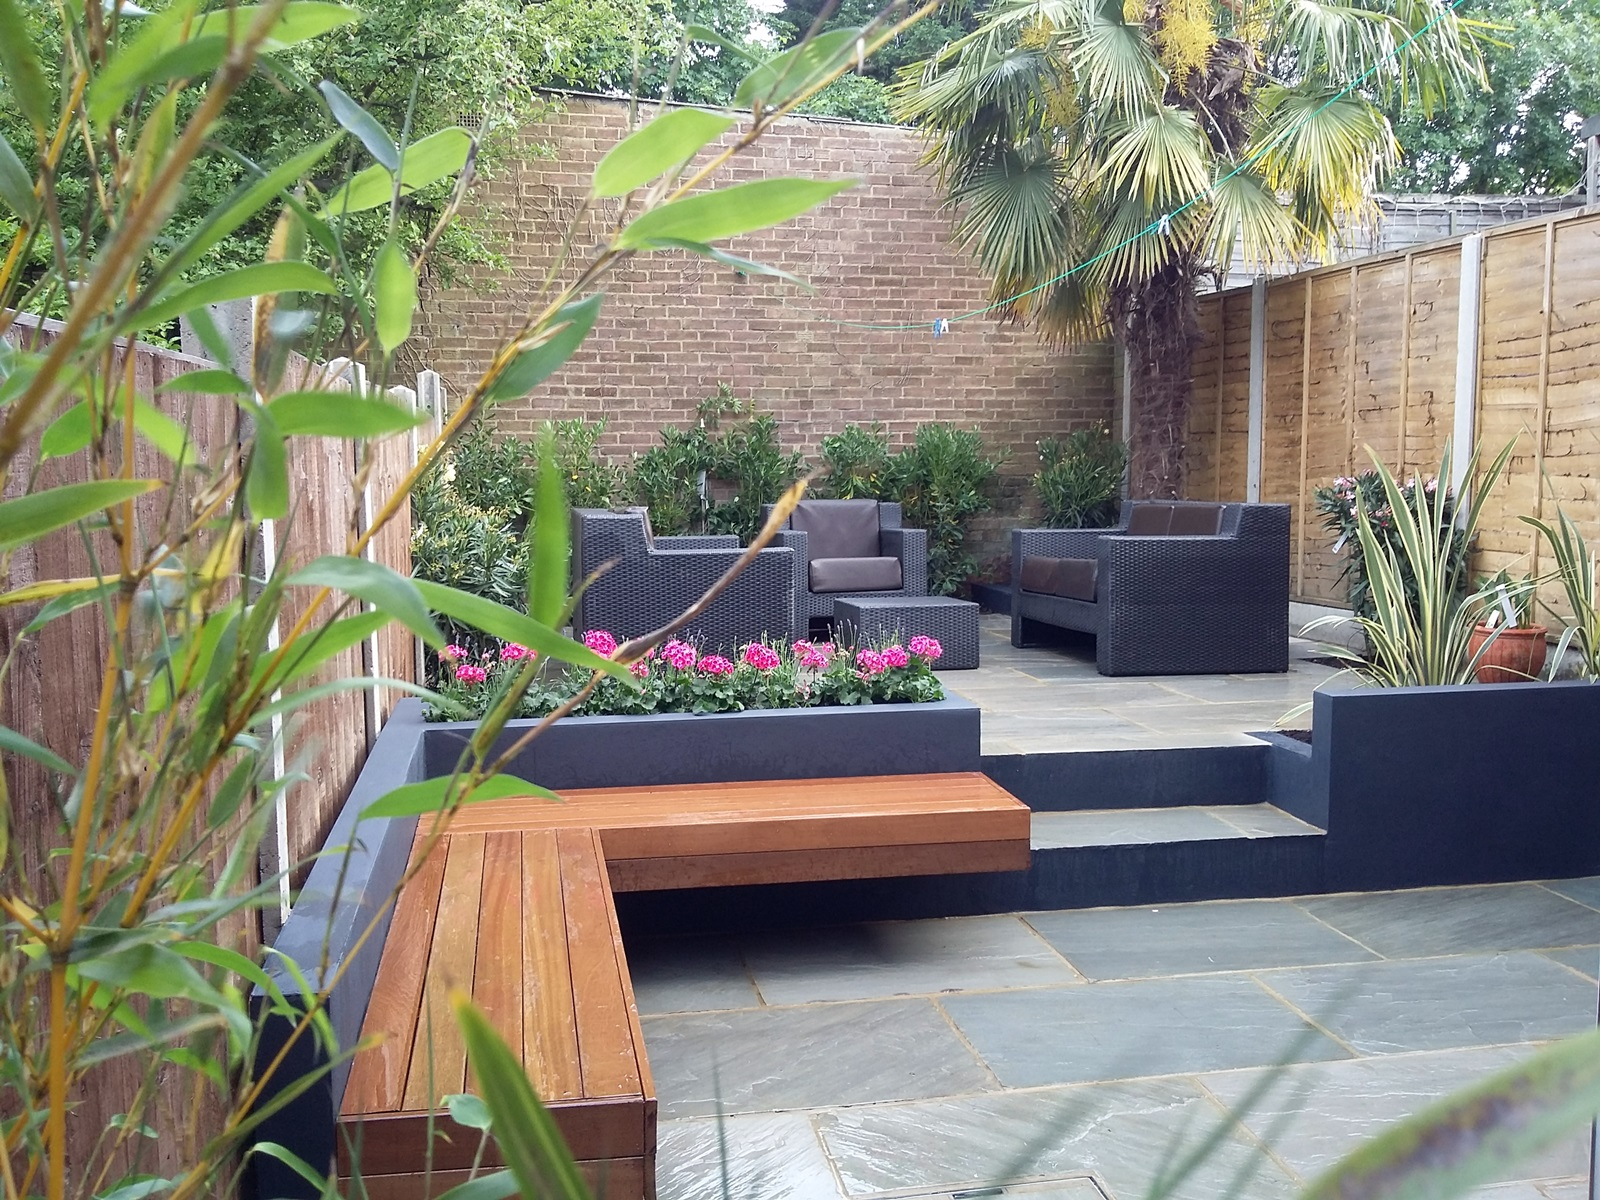 Modern Garden Design Of Modern Garden Design London Natural Sandstone Paving Patio